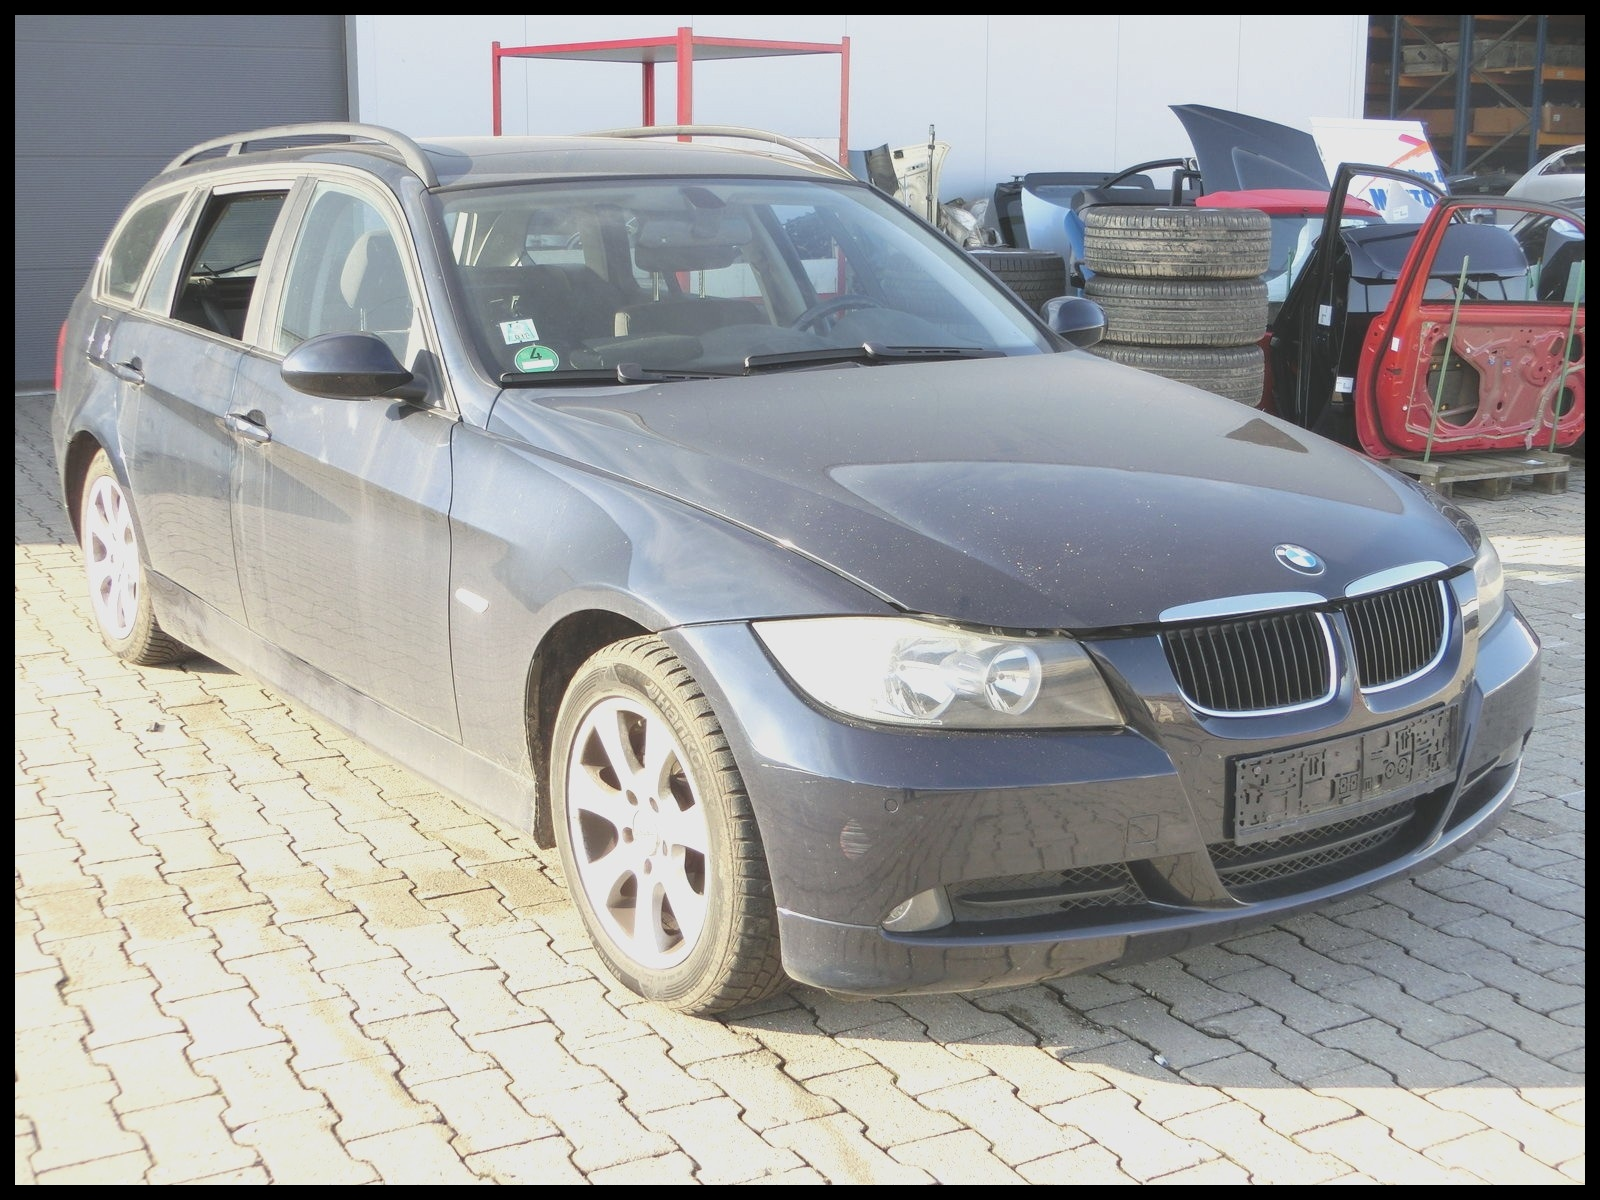 2018 Bmw 328i New Release 2007 Bmw E60 530i Specs Specs and Review 2018 Bmw